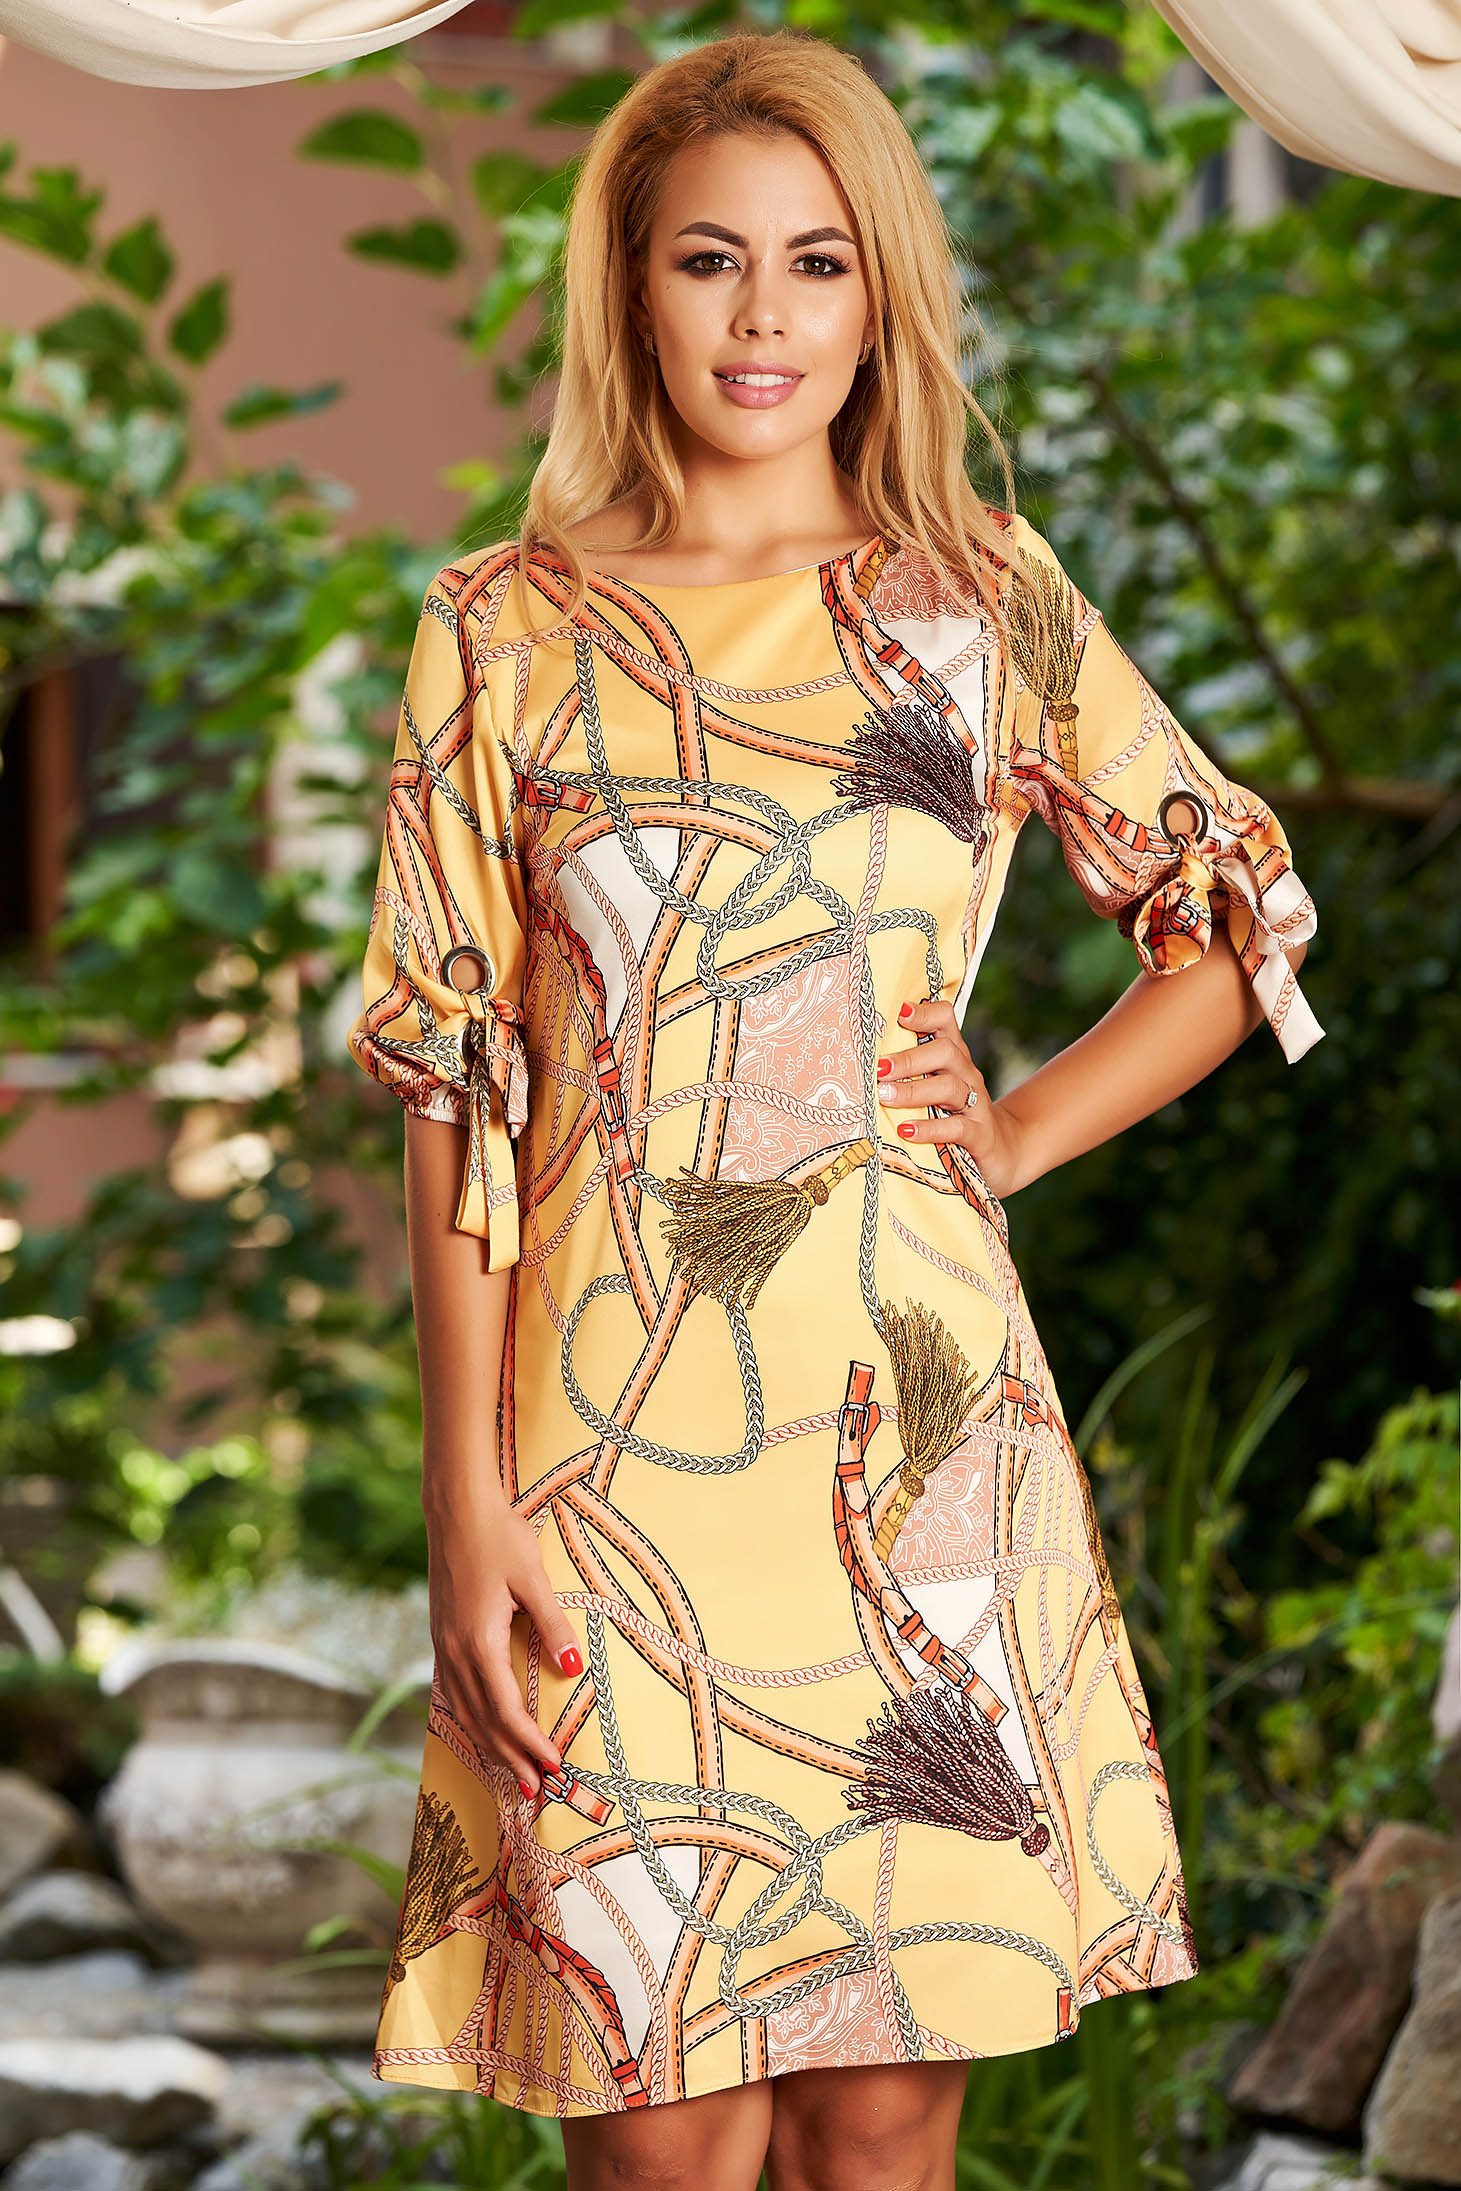 Mustard dress daily midi a-line with rounded cleavage thin fabric with graphic details